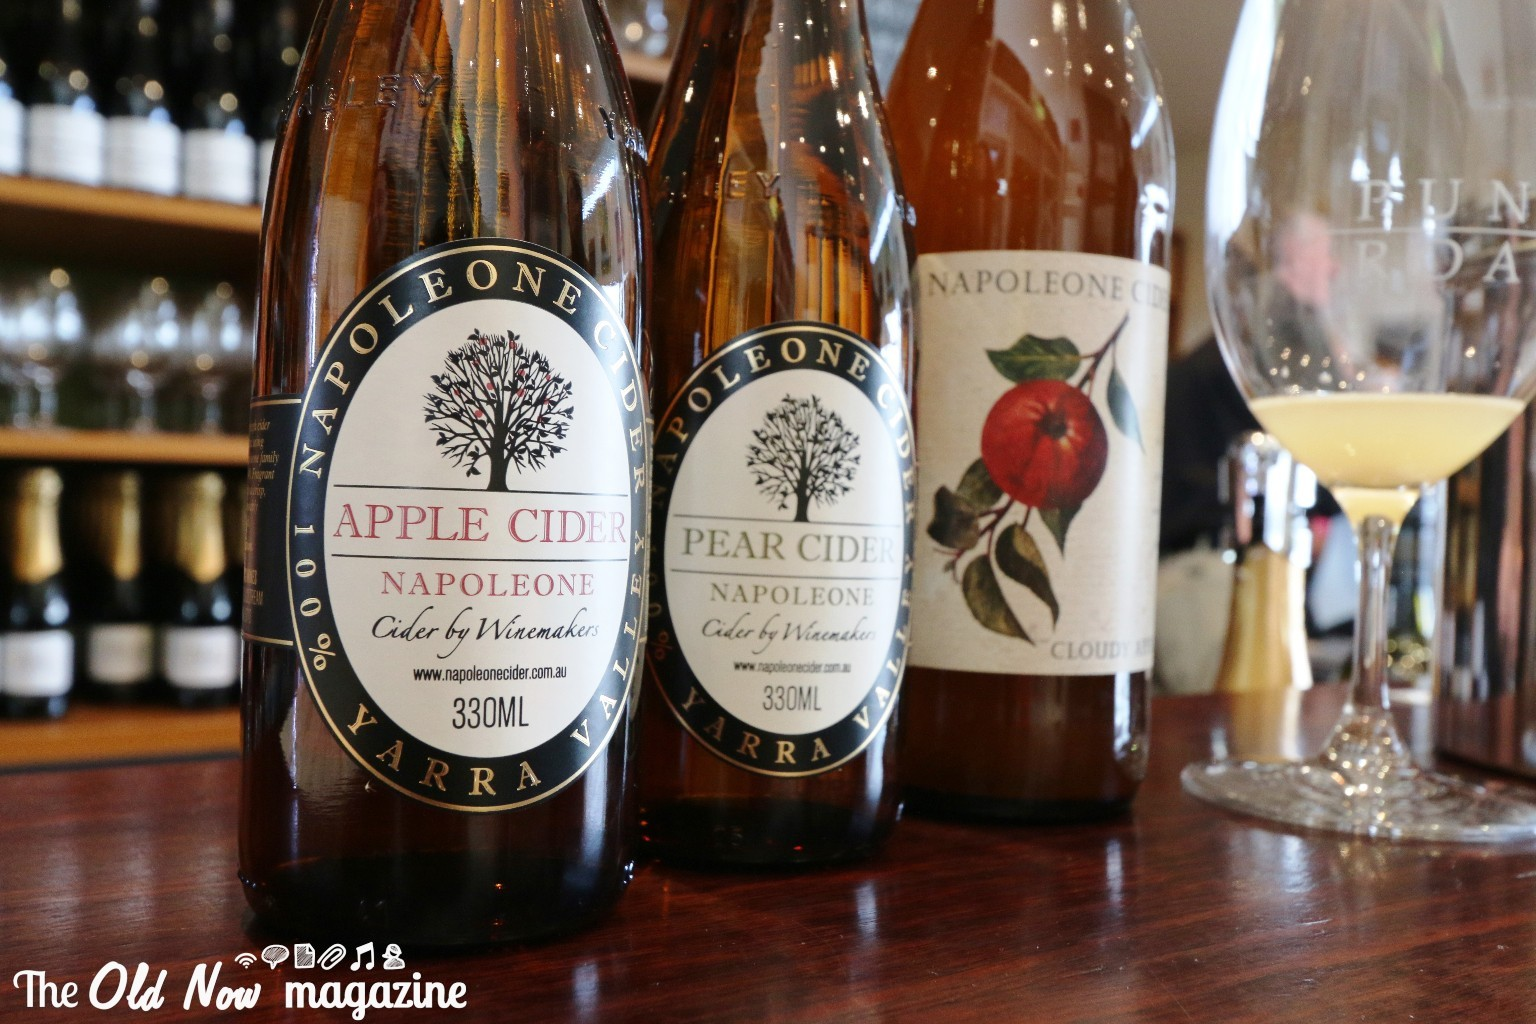 Napoleon and Co Cider THEOLDNOW (18)